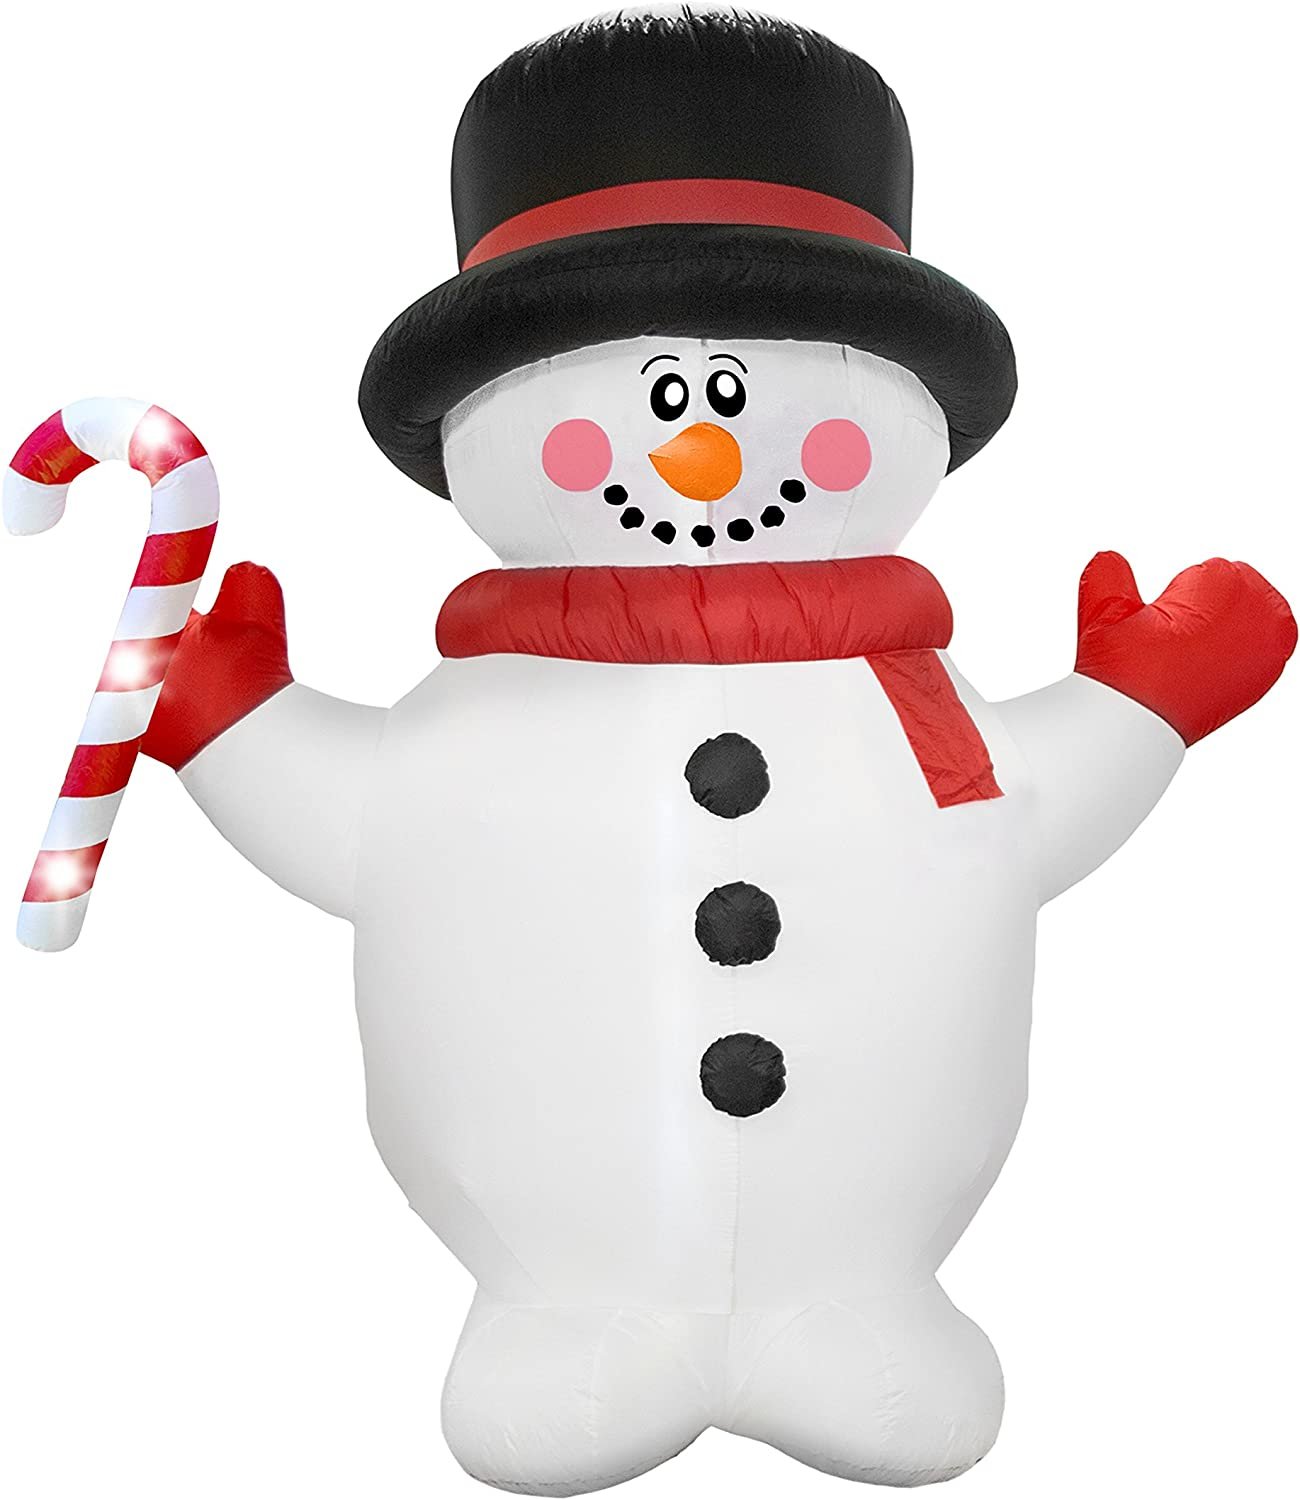 AirFormz AIR12510 Airblown Inflatable Holiday Yard Decoration, 7.5' Tall, Snowman